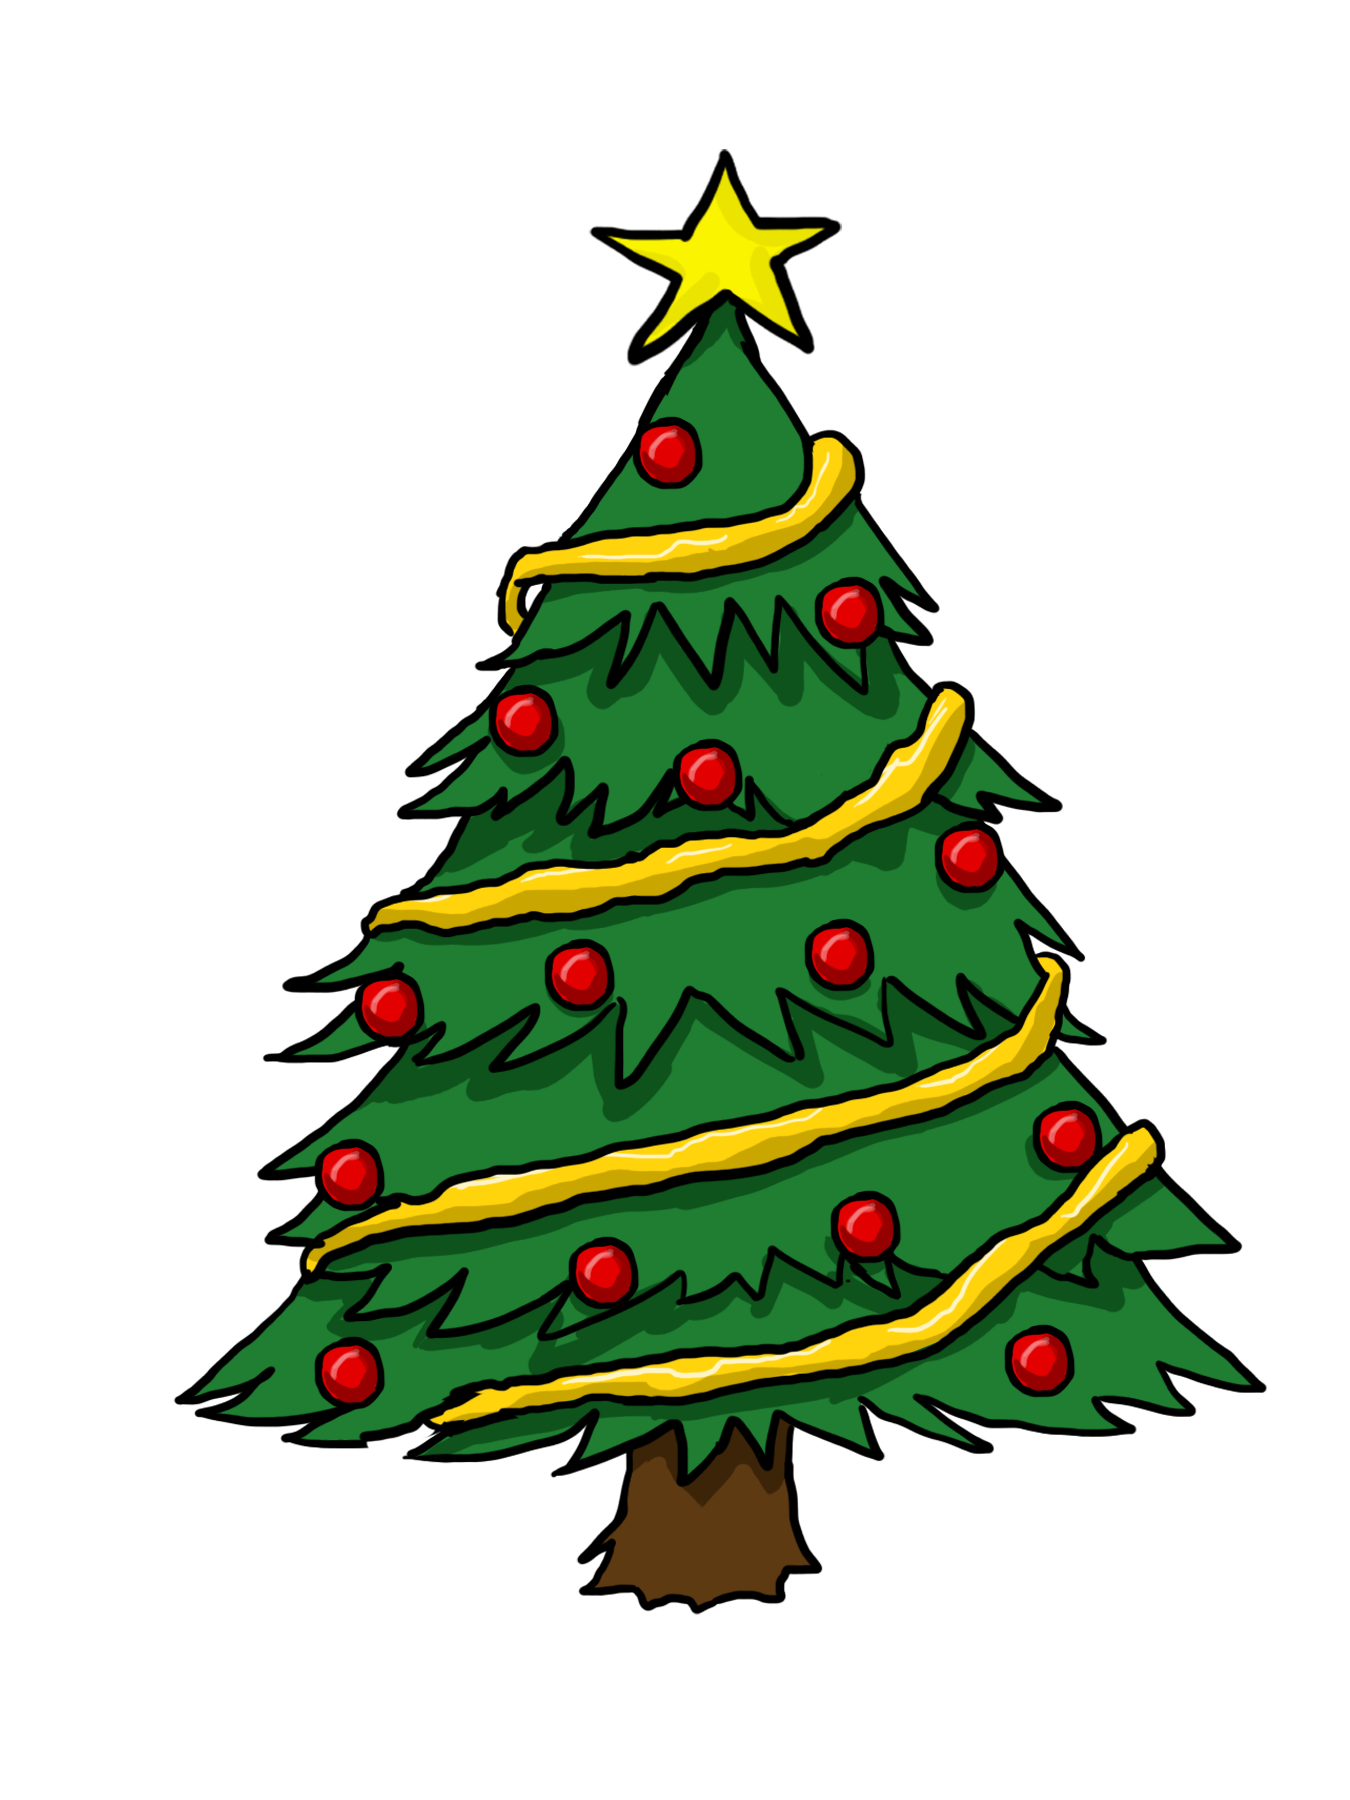 Chrismas tree clipart royalty free library Printable Christmas Tree Clipart - Clipart Kid royalty free library